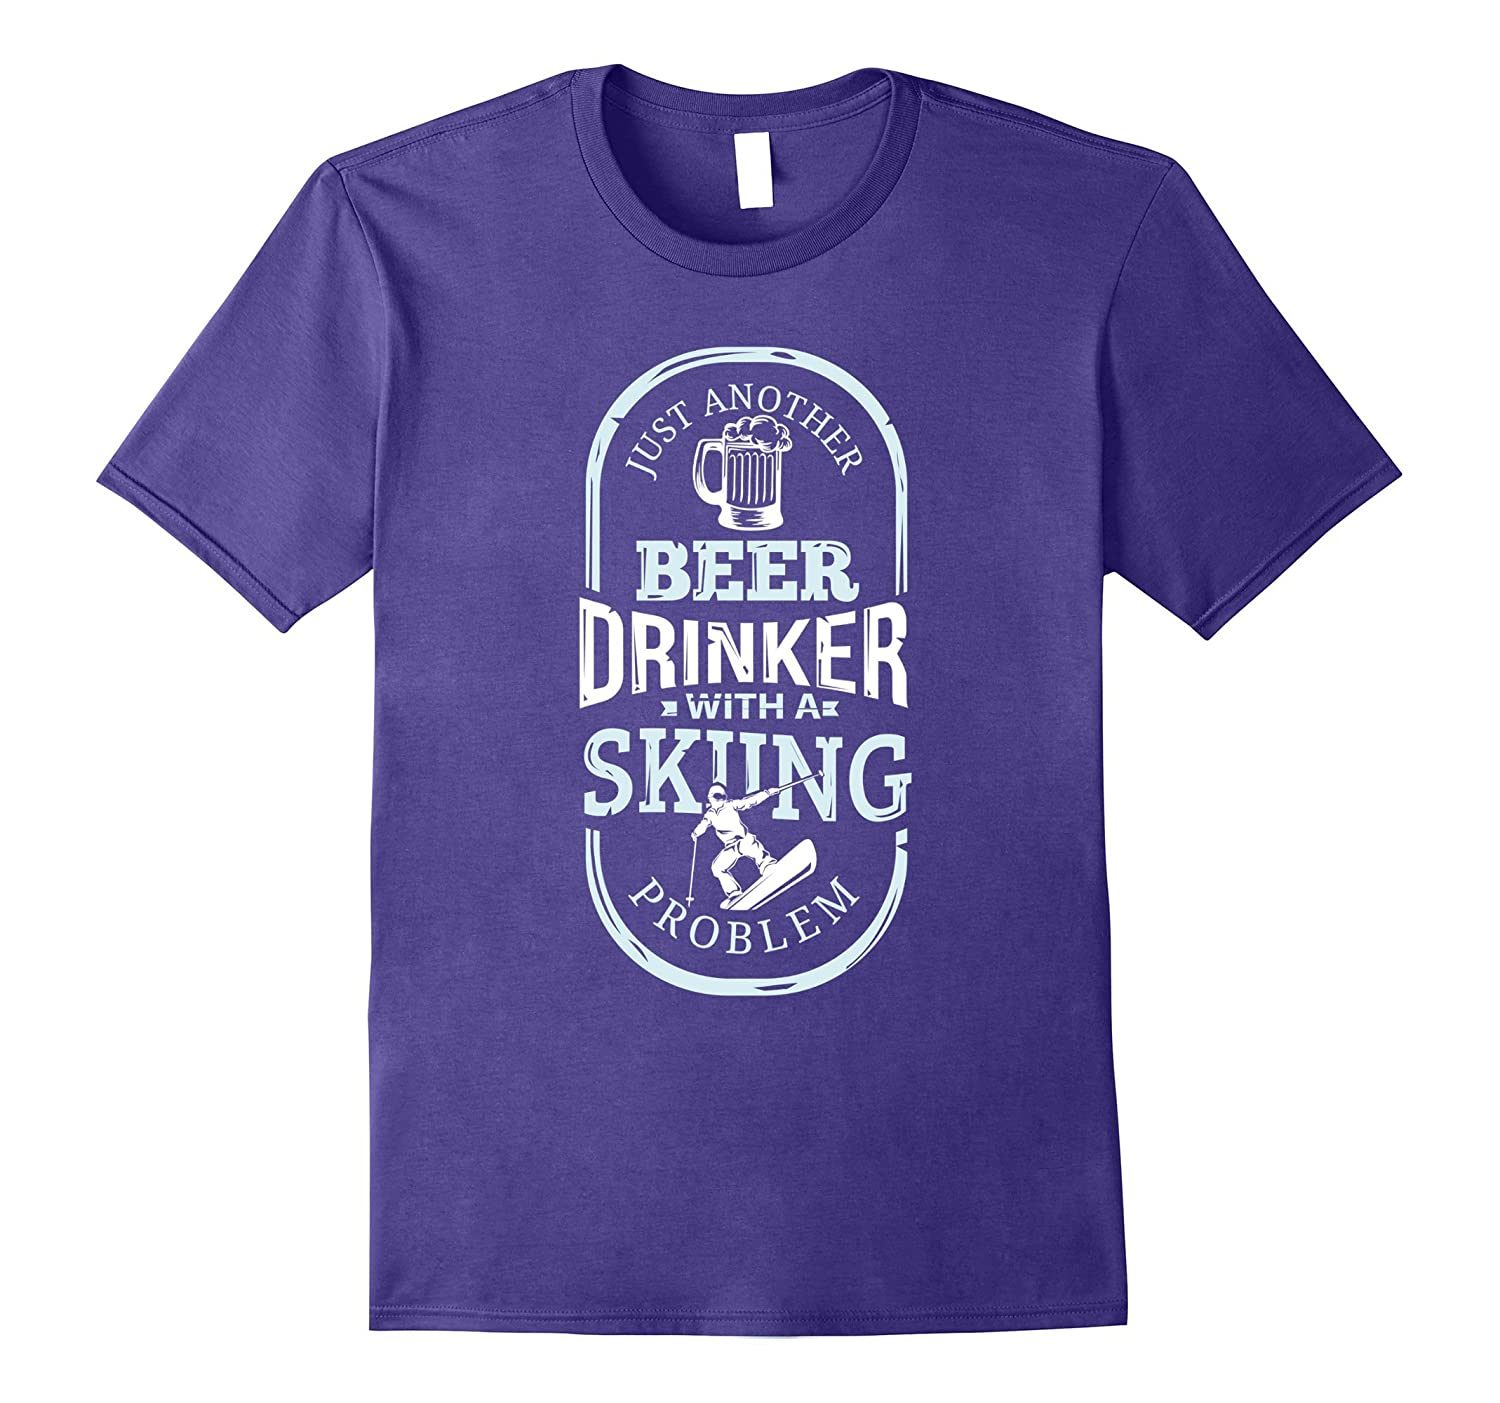 Just Another Beer Drinker With A Skiing Problem T-Shirt-T-Shirt